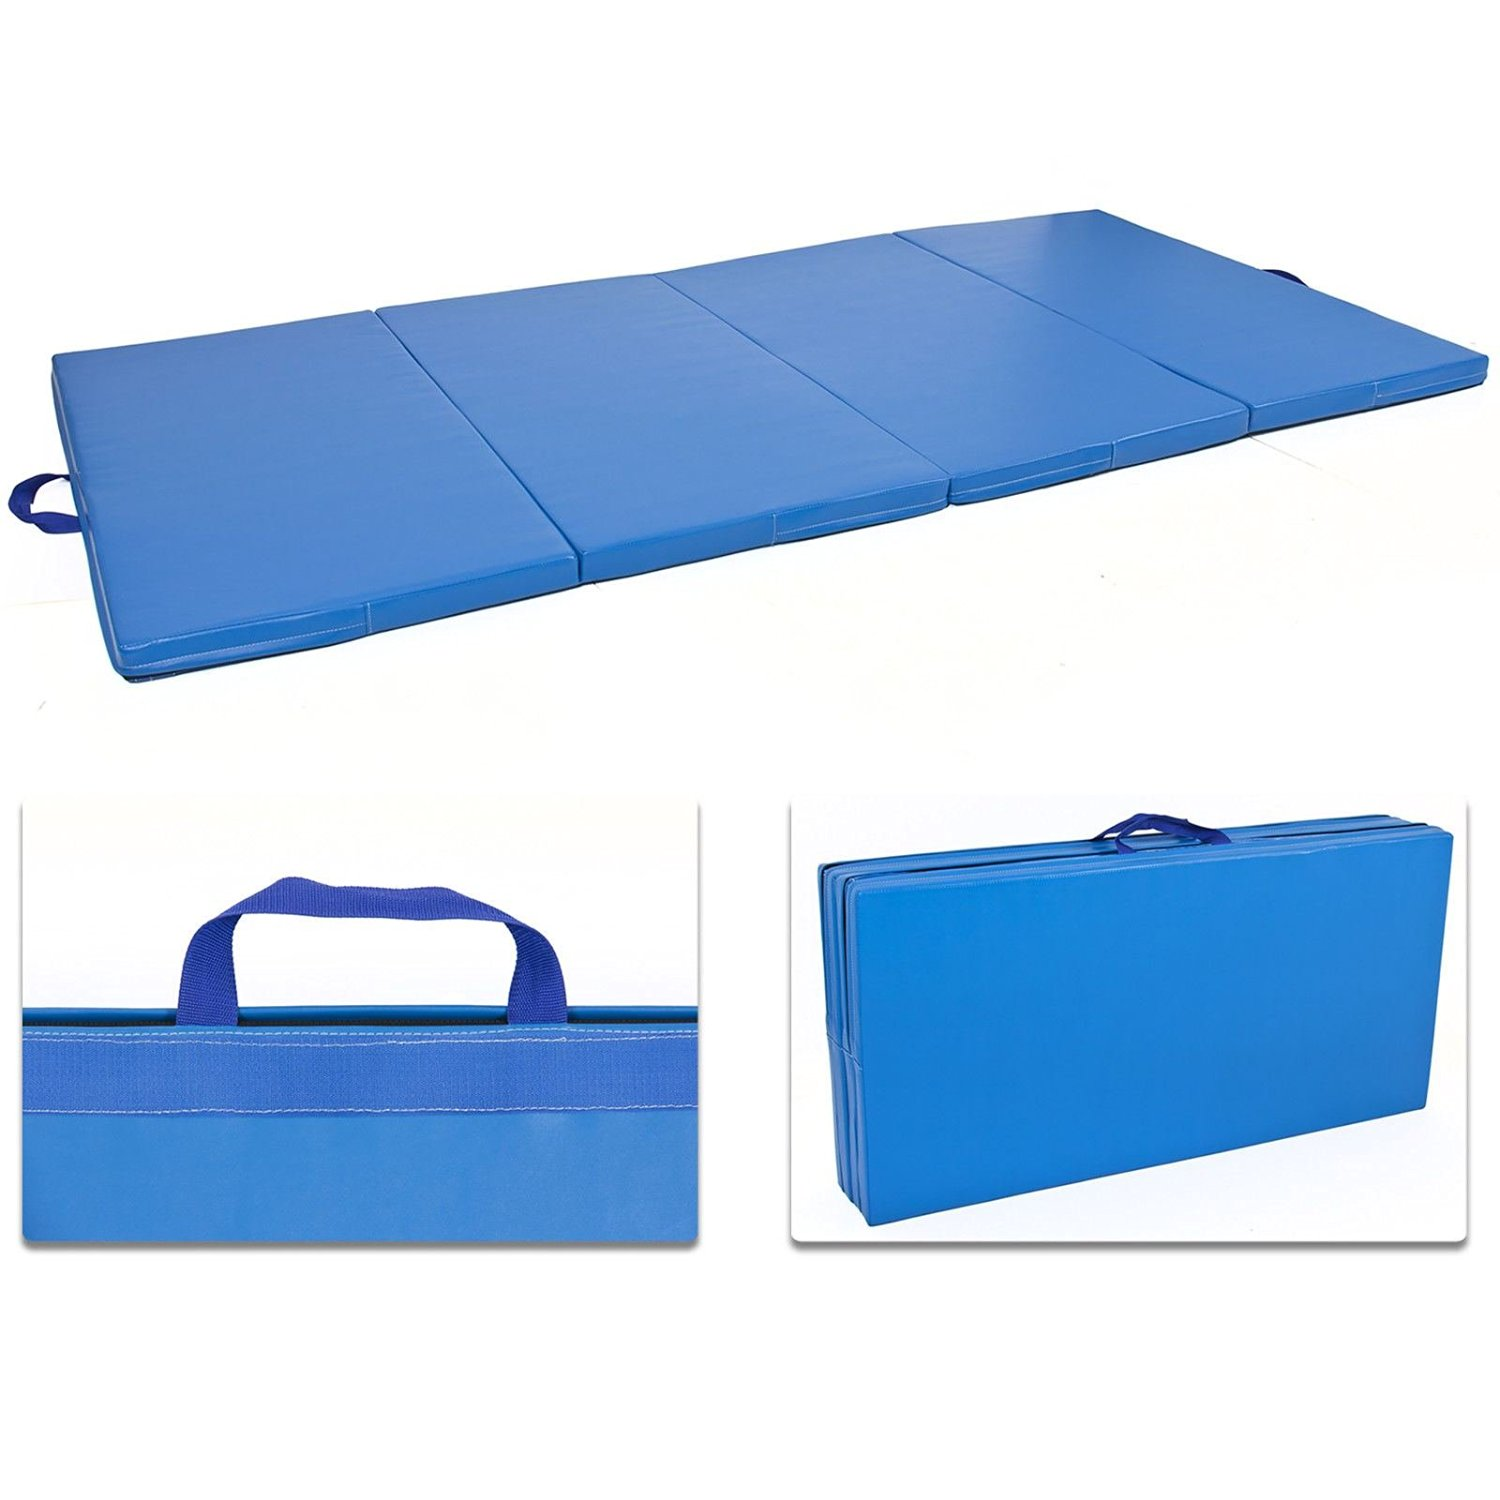 reviews pcr trak helpful mats customer x in best equipment rated blueberry zcmzl panel gymnastics tumbling product tumbl used folding mat